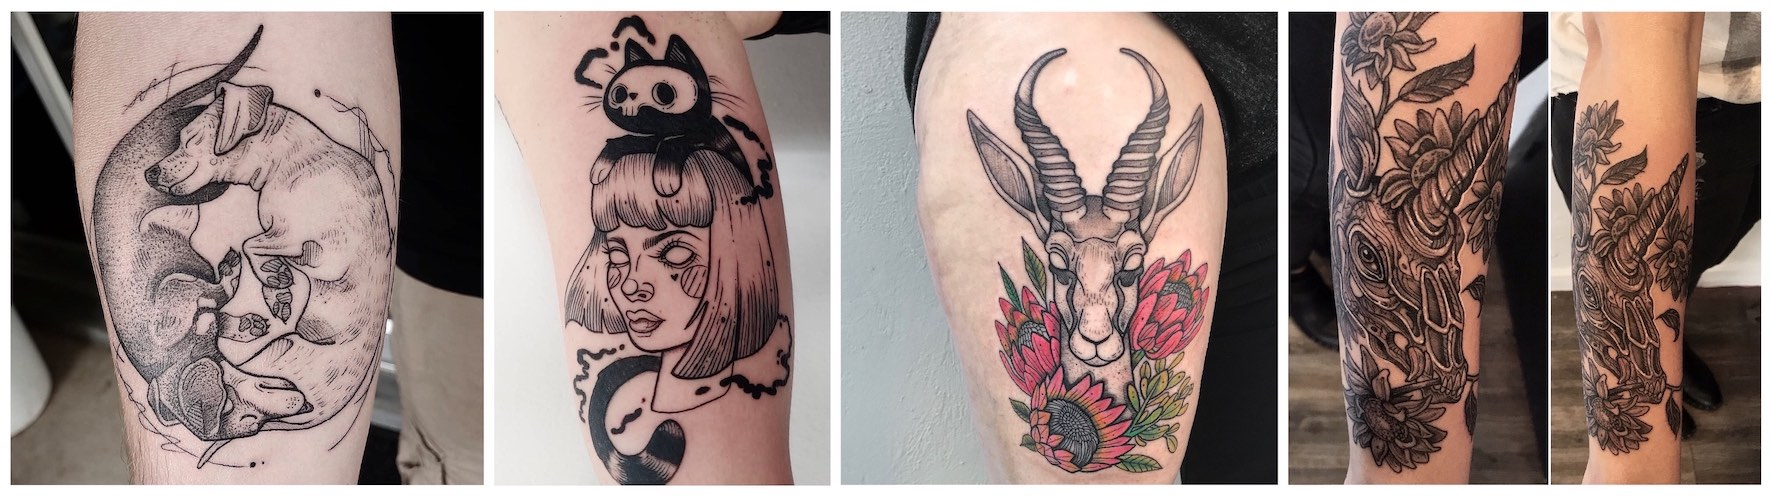 A selection of sketchy tattoos done by Roxy Rose